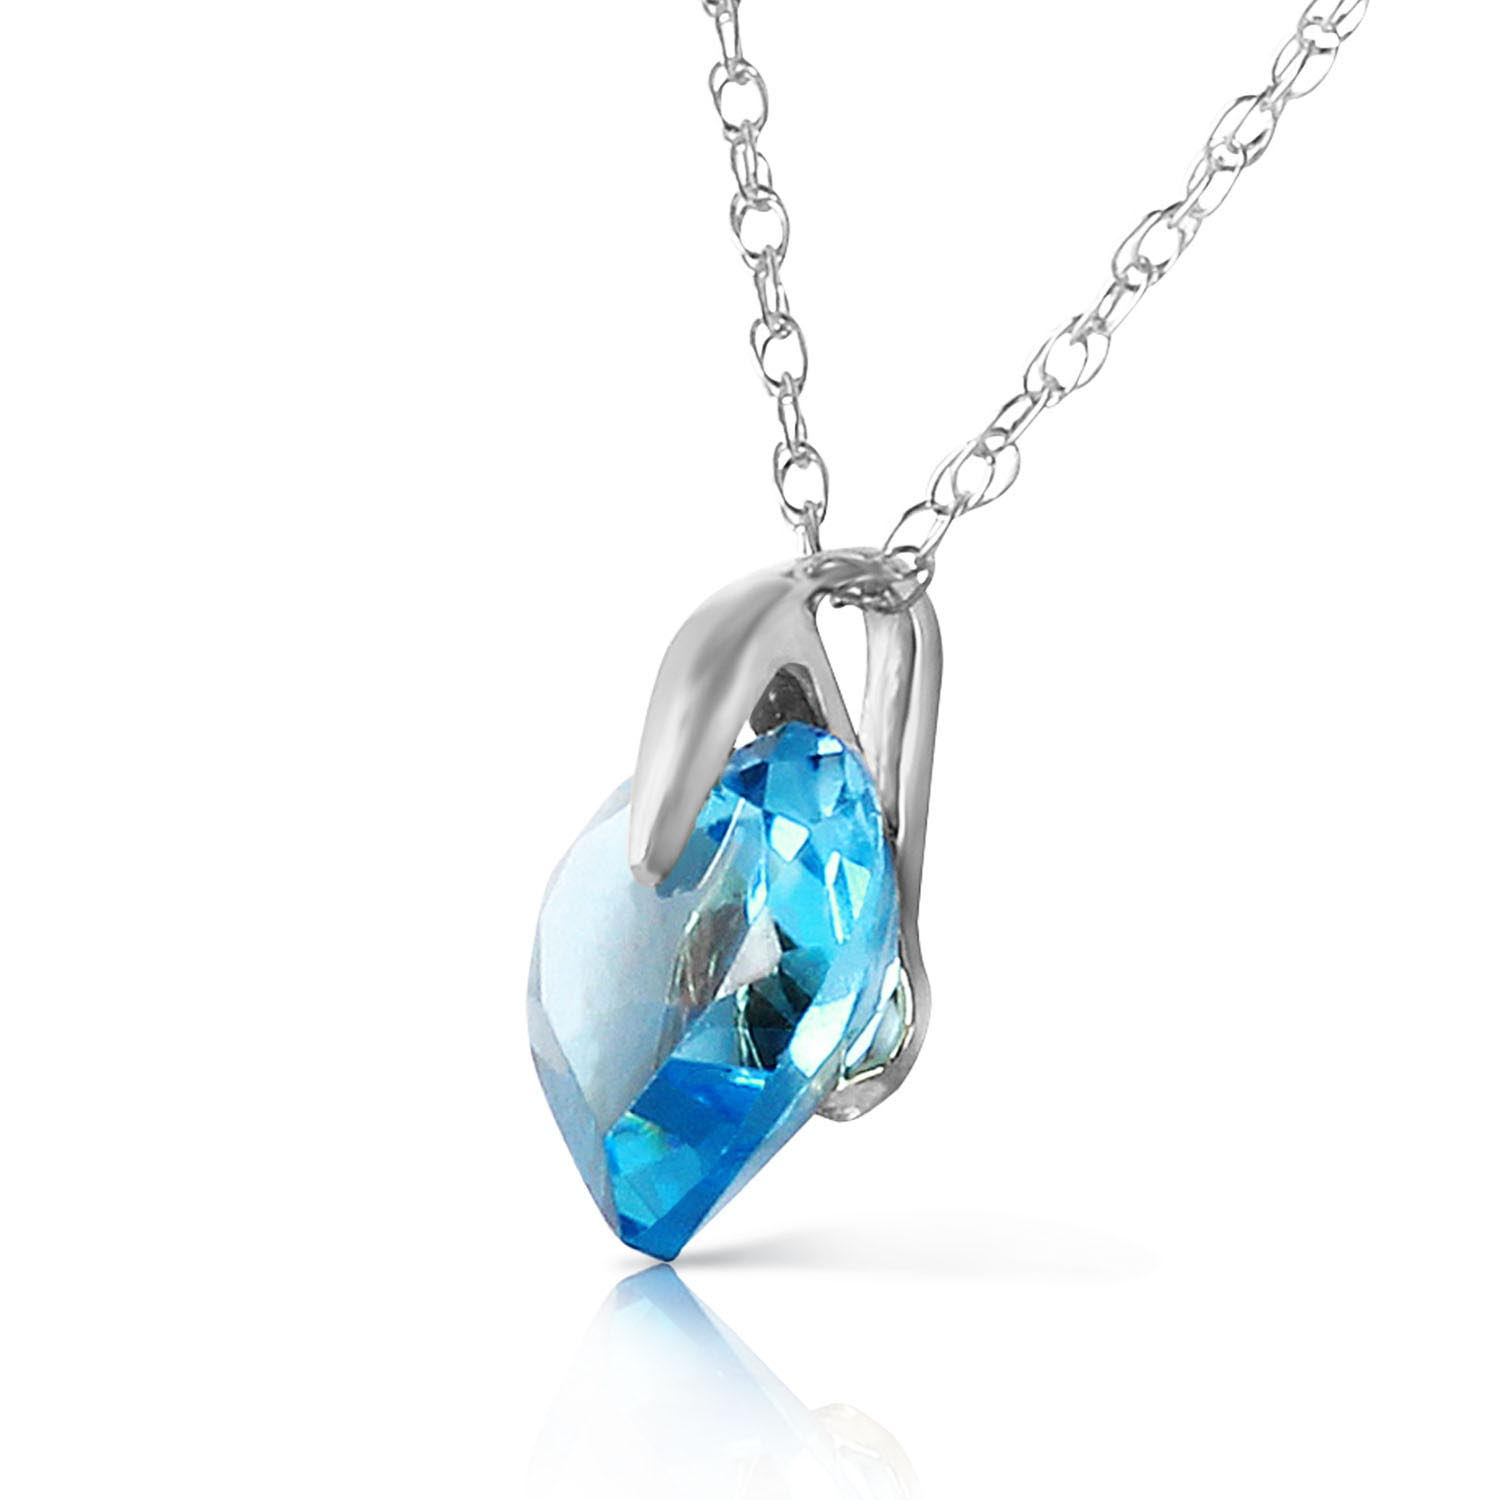 Blue topaz heart pendant necklace 115ct in 9ct white gold 2357w blue topaz heart pendant necklace 115ct in 9ct white gold aloadofball Image collections